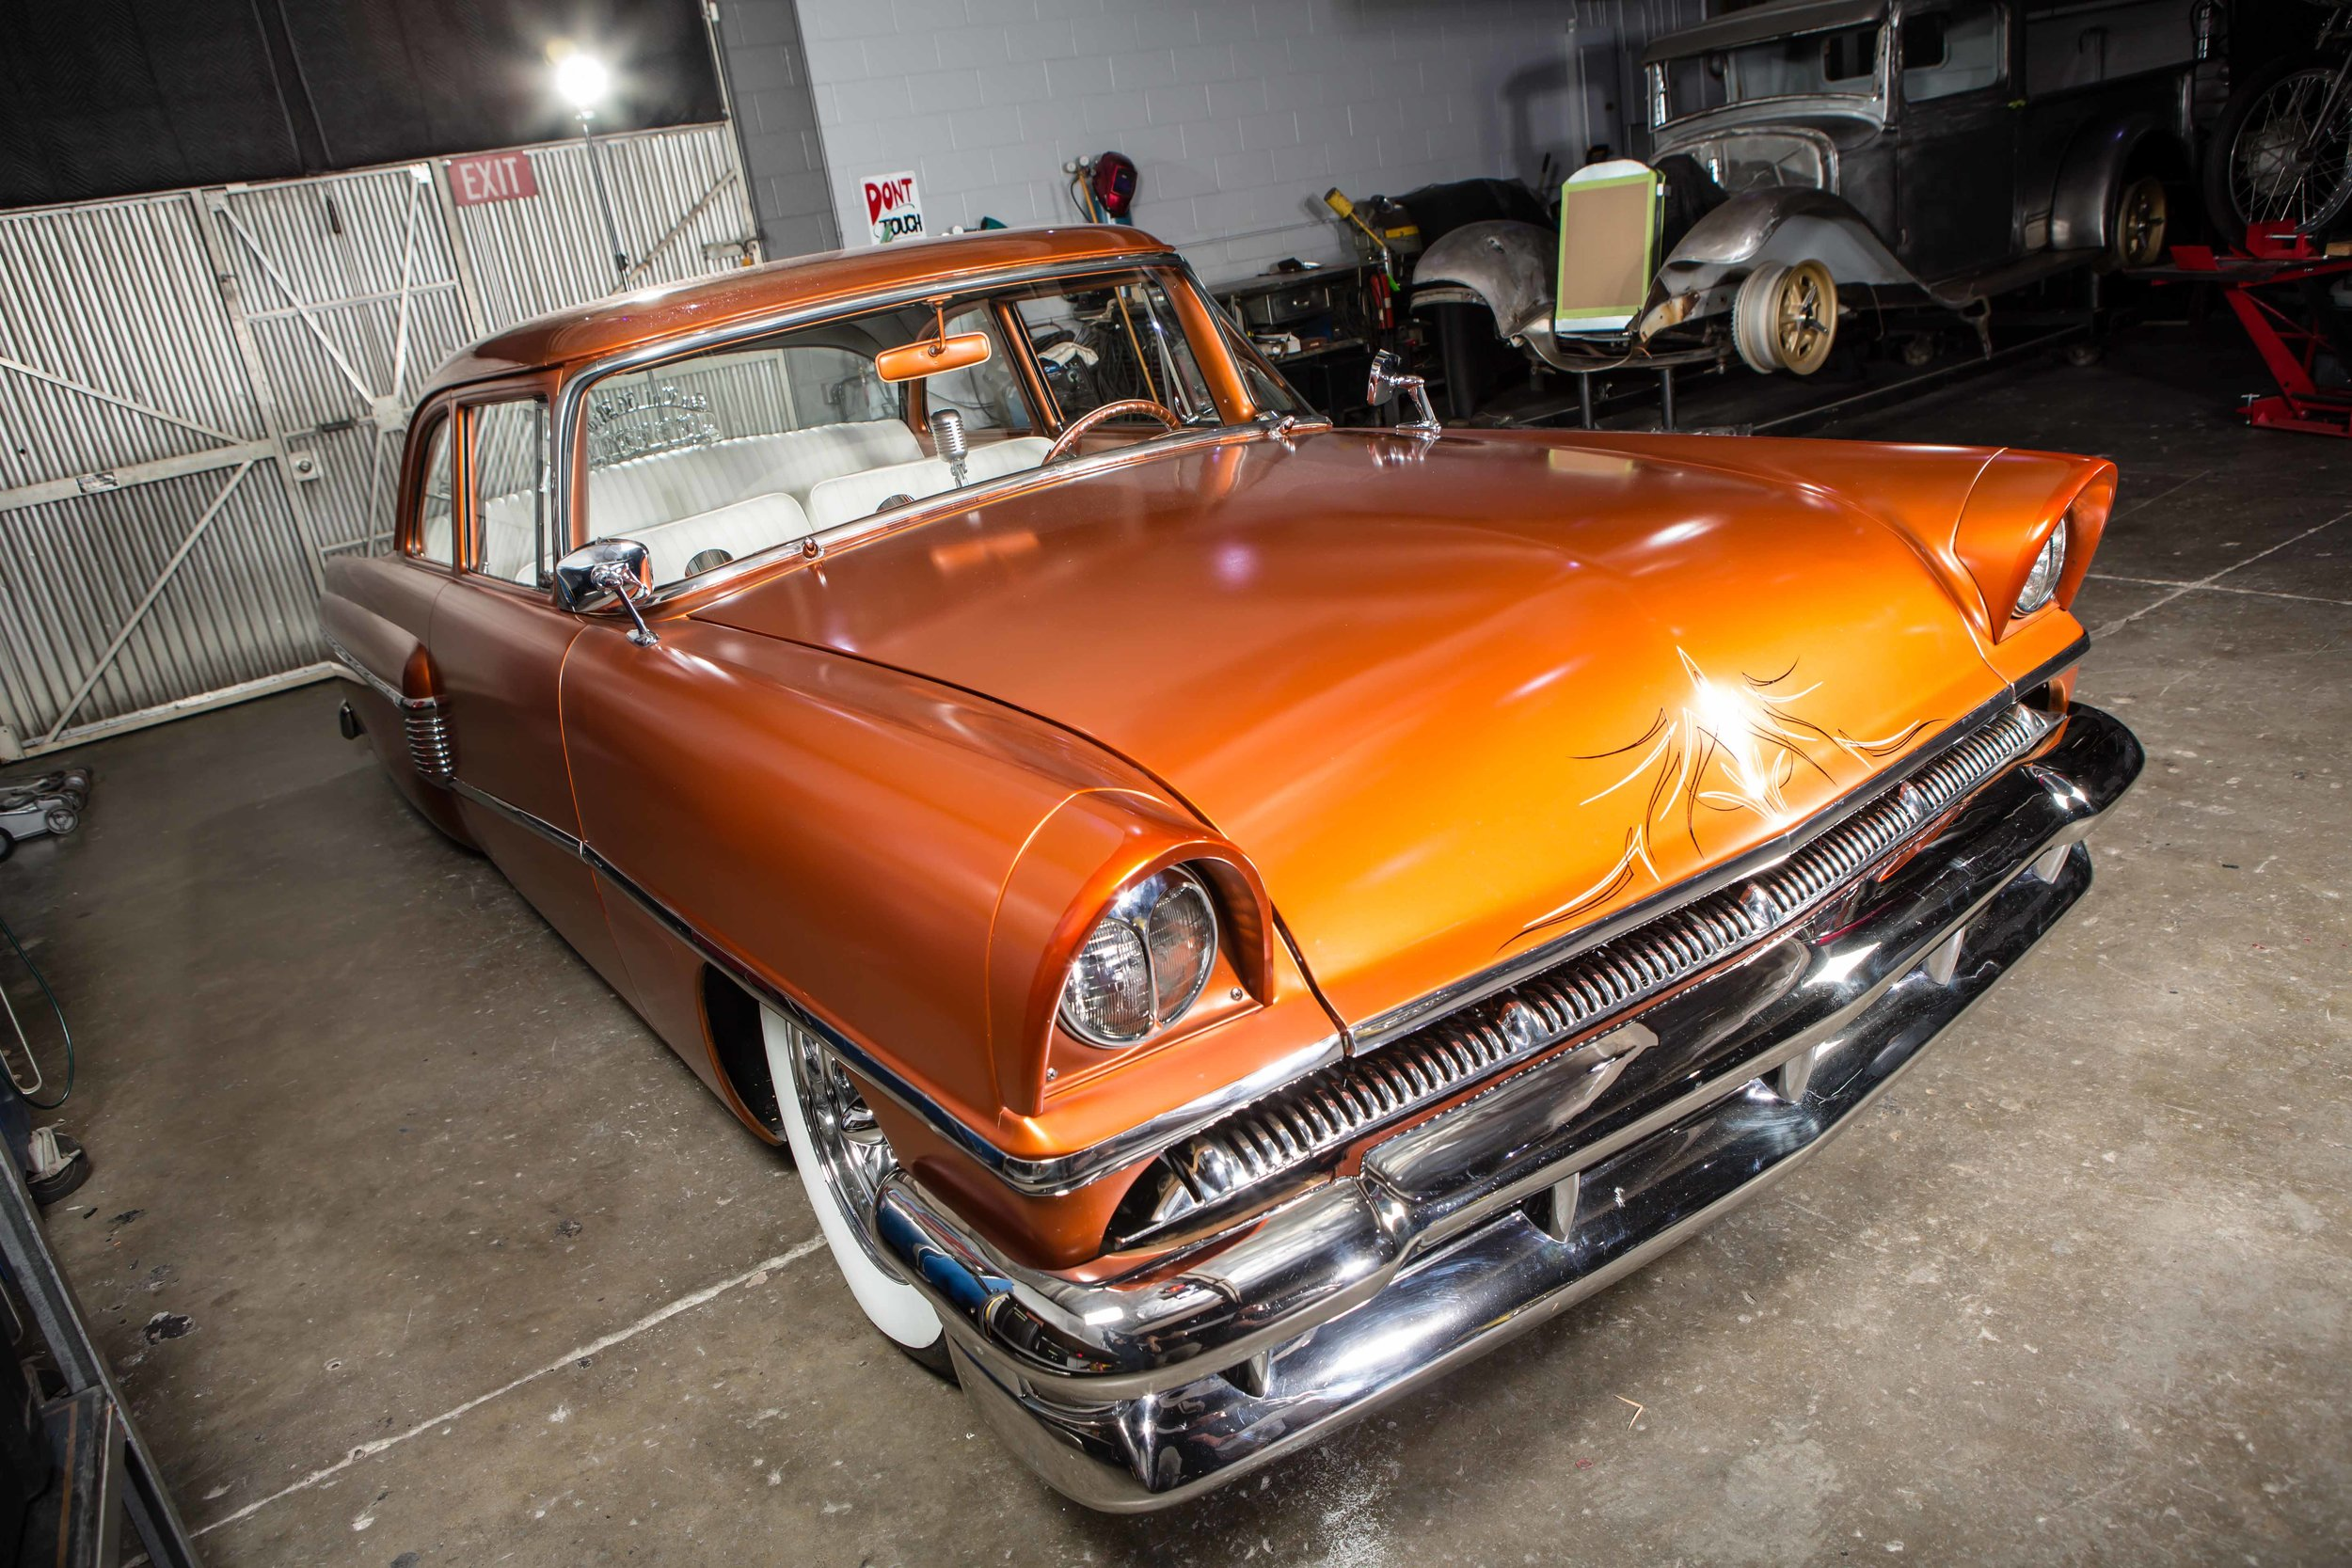 Anaheim Rod and Custom 56 Merc Studio Shots All Complete-17.jpg